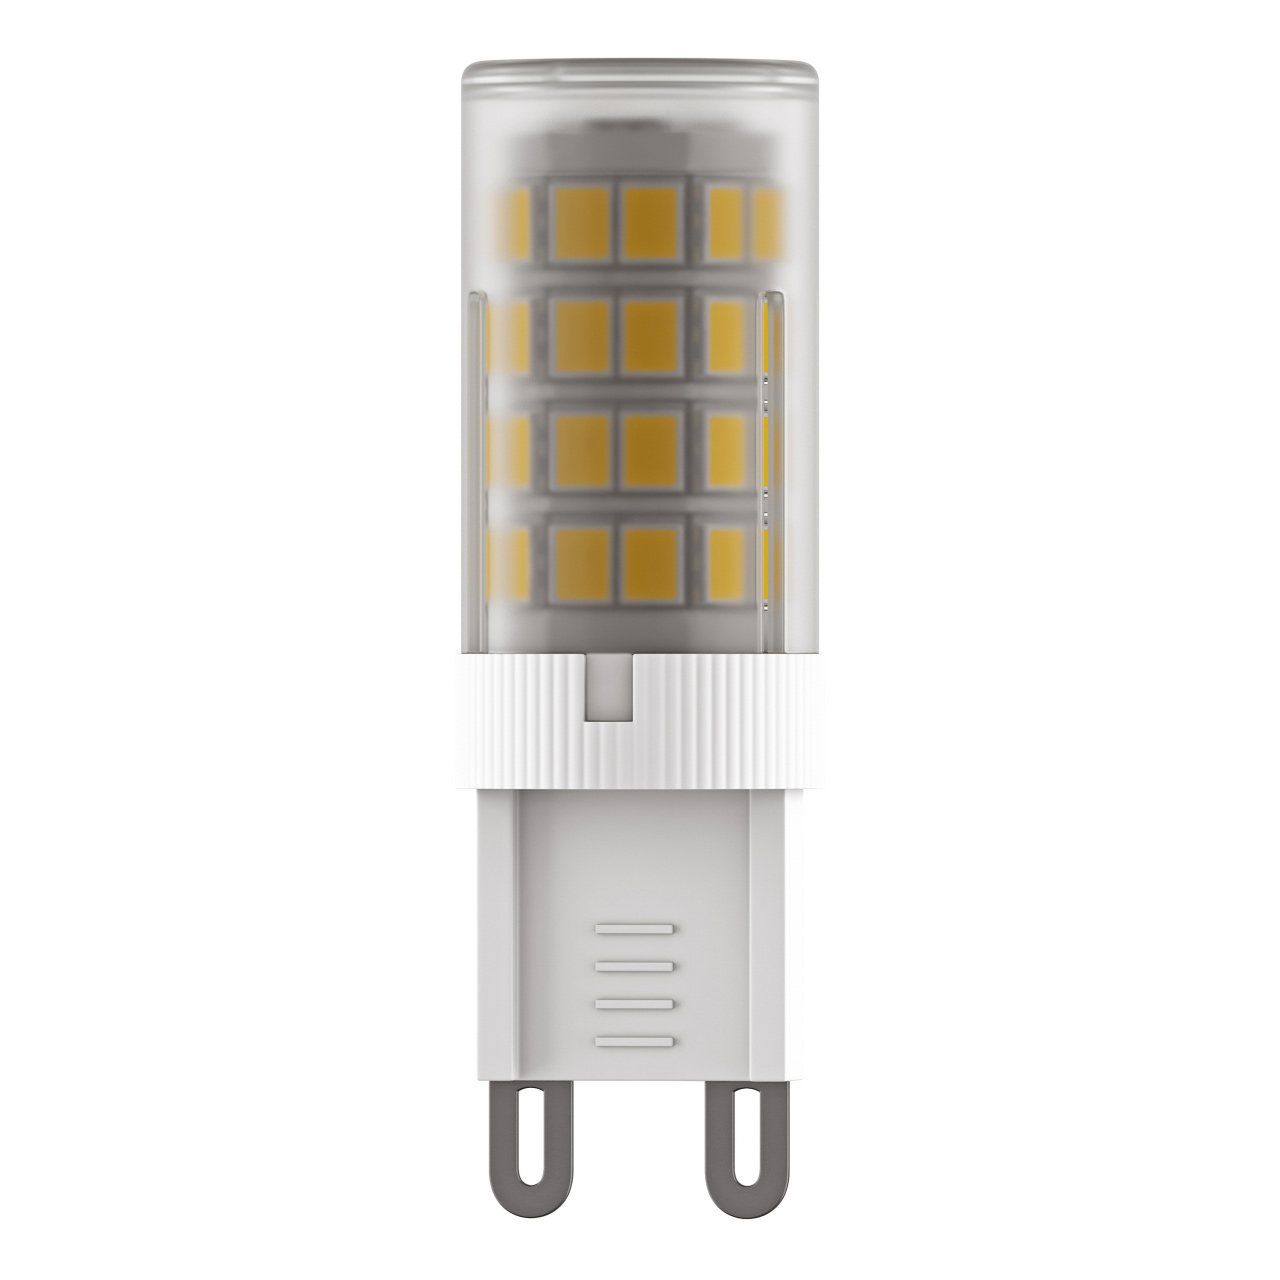 Лампа LED 220V JC G9 6W=60W 492LM 360G FR 3000K 20000H Lightstar 940462